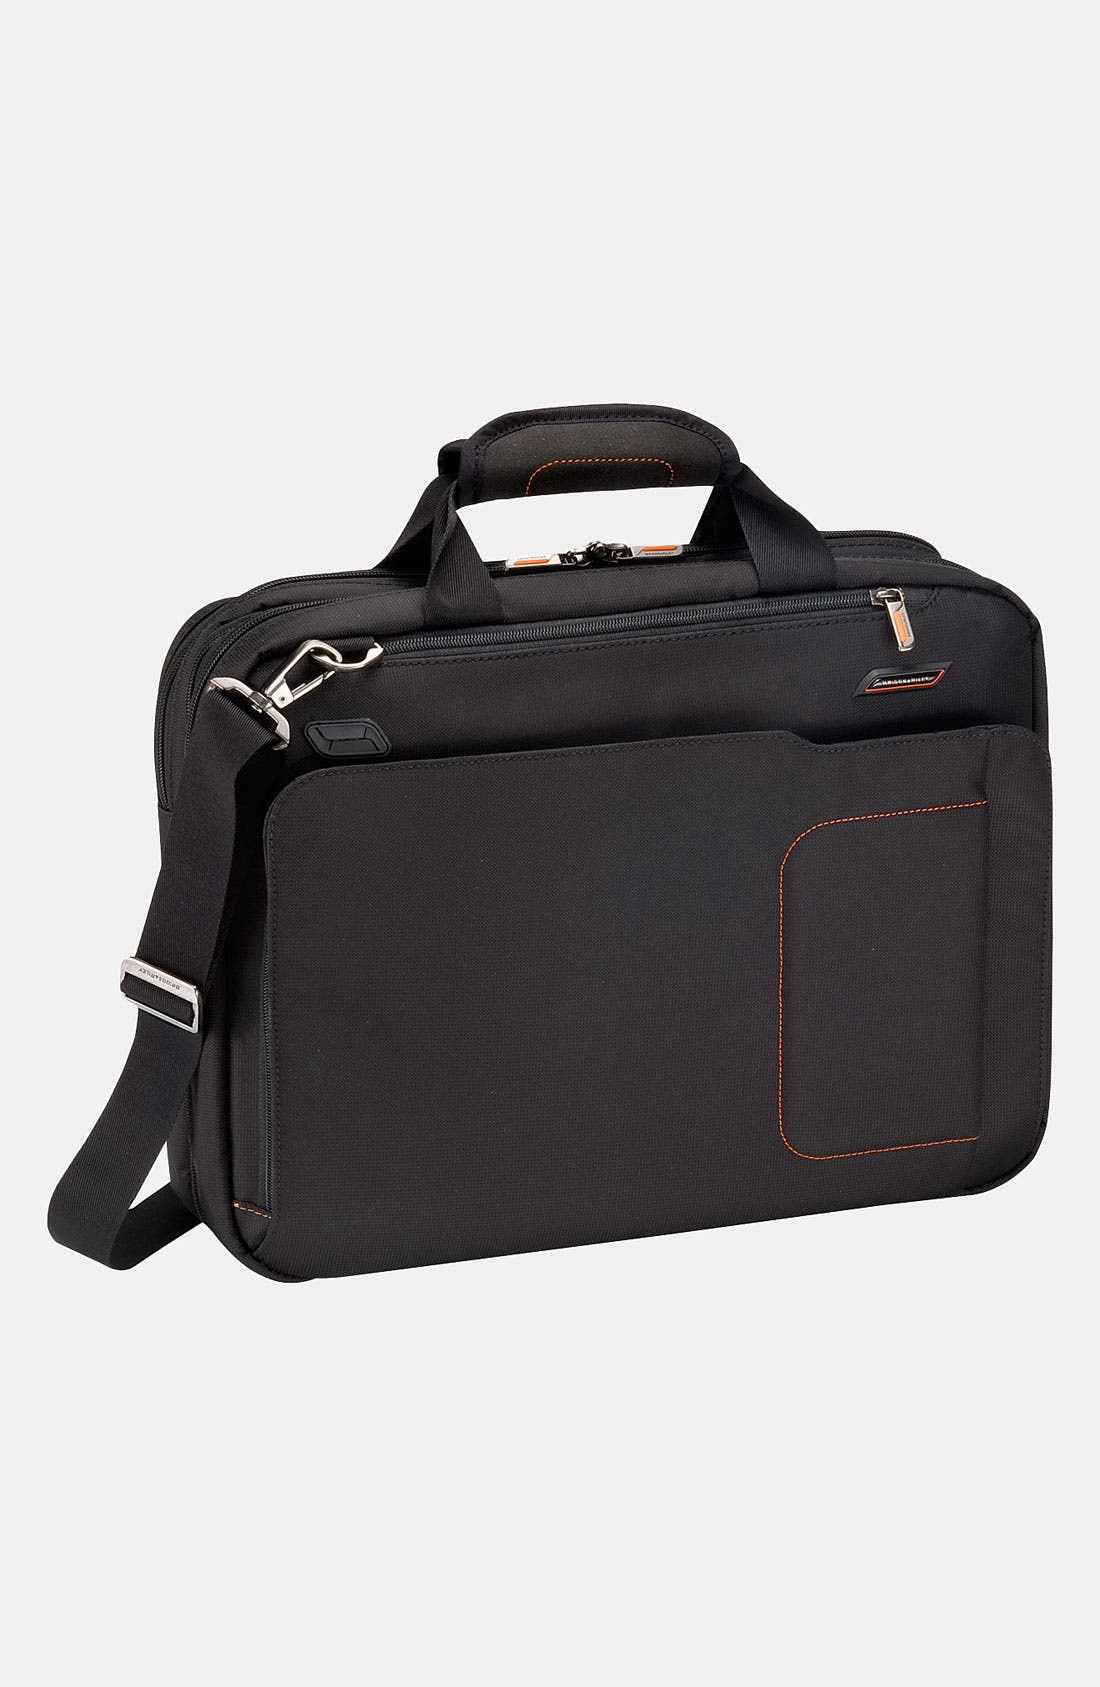 Main Image - Briggs & Riley 'Verb - Mach Medium' Briefcase